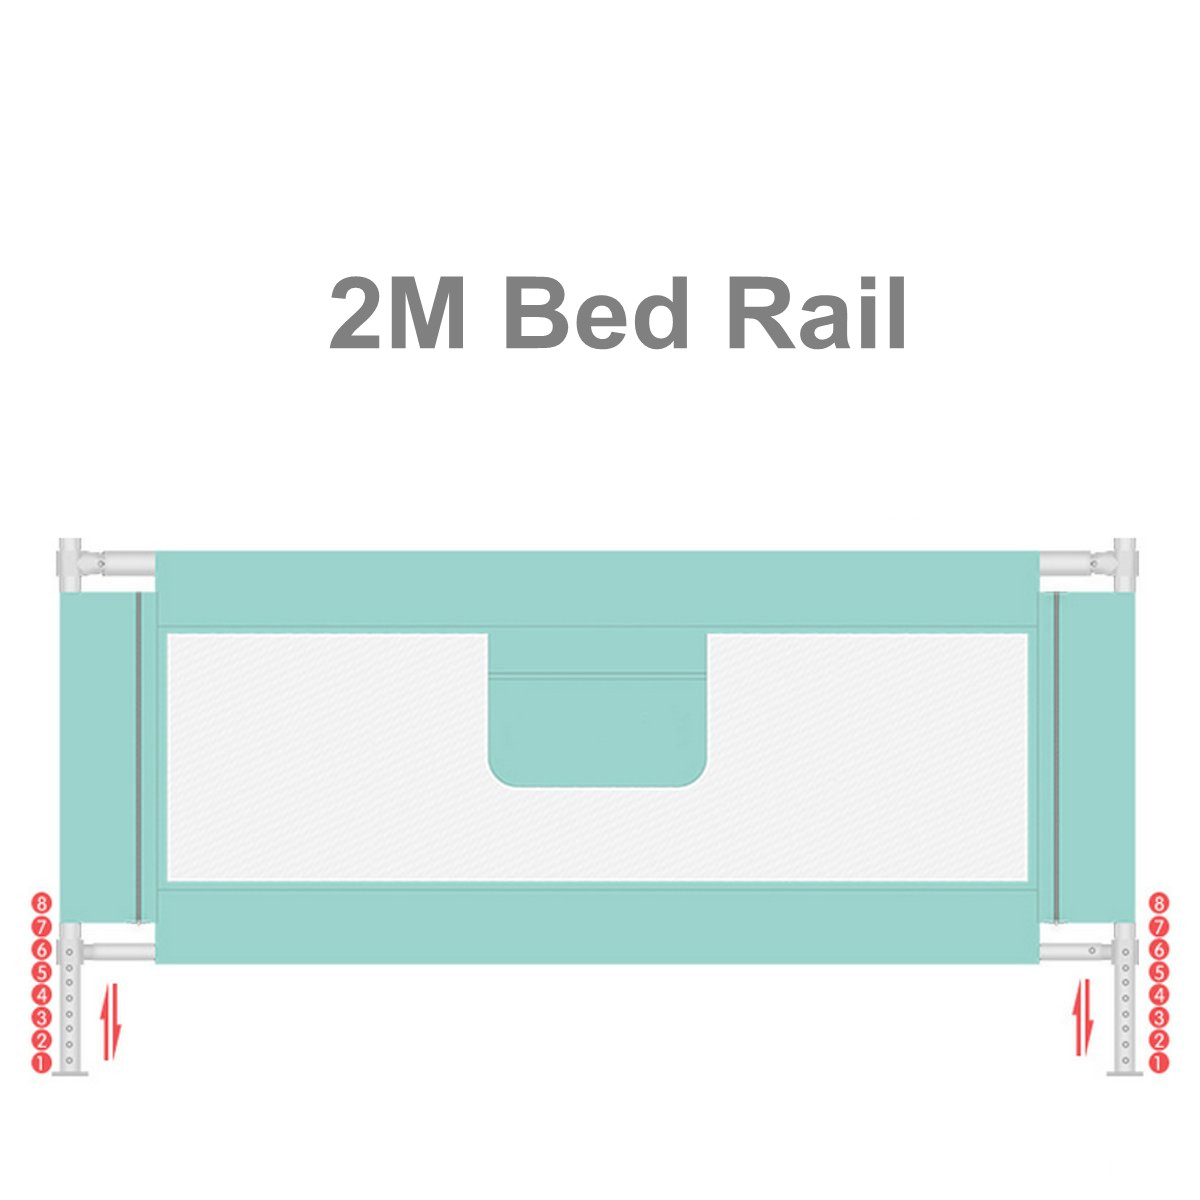 2M Baby Bed Fence for Child Safety used as Baby Gate from Falling Accidentally while Sleeping or Playing 7